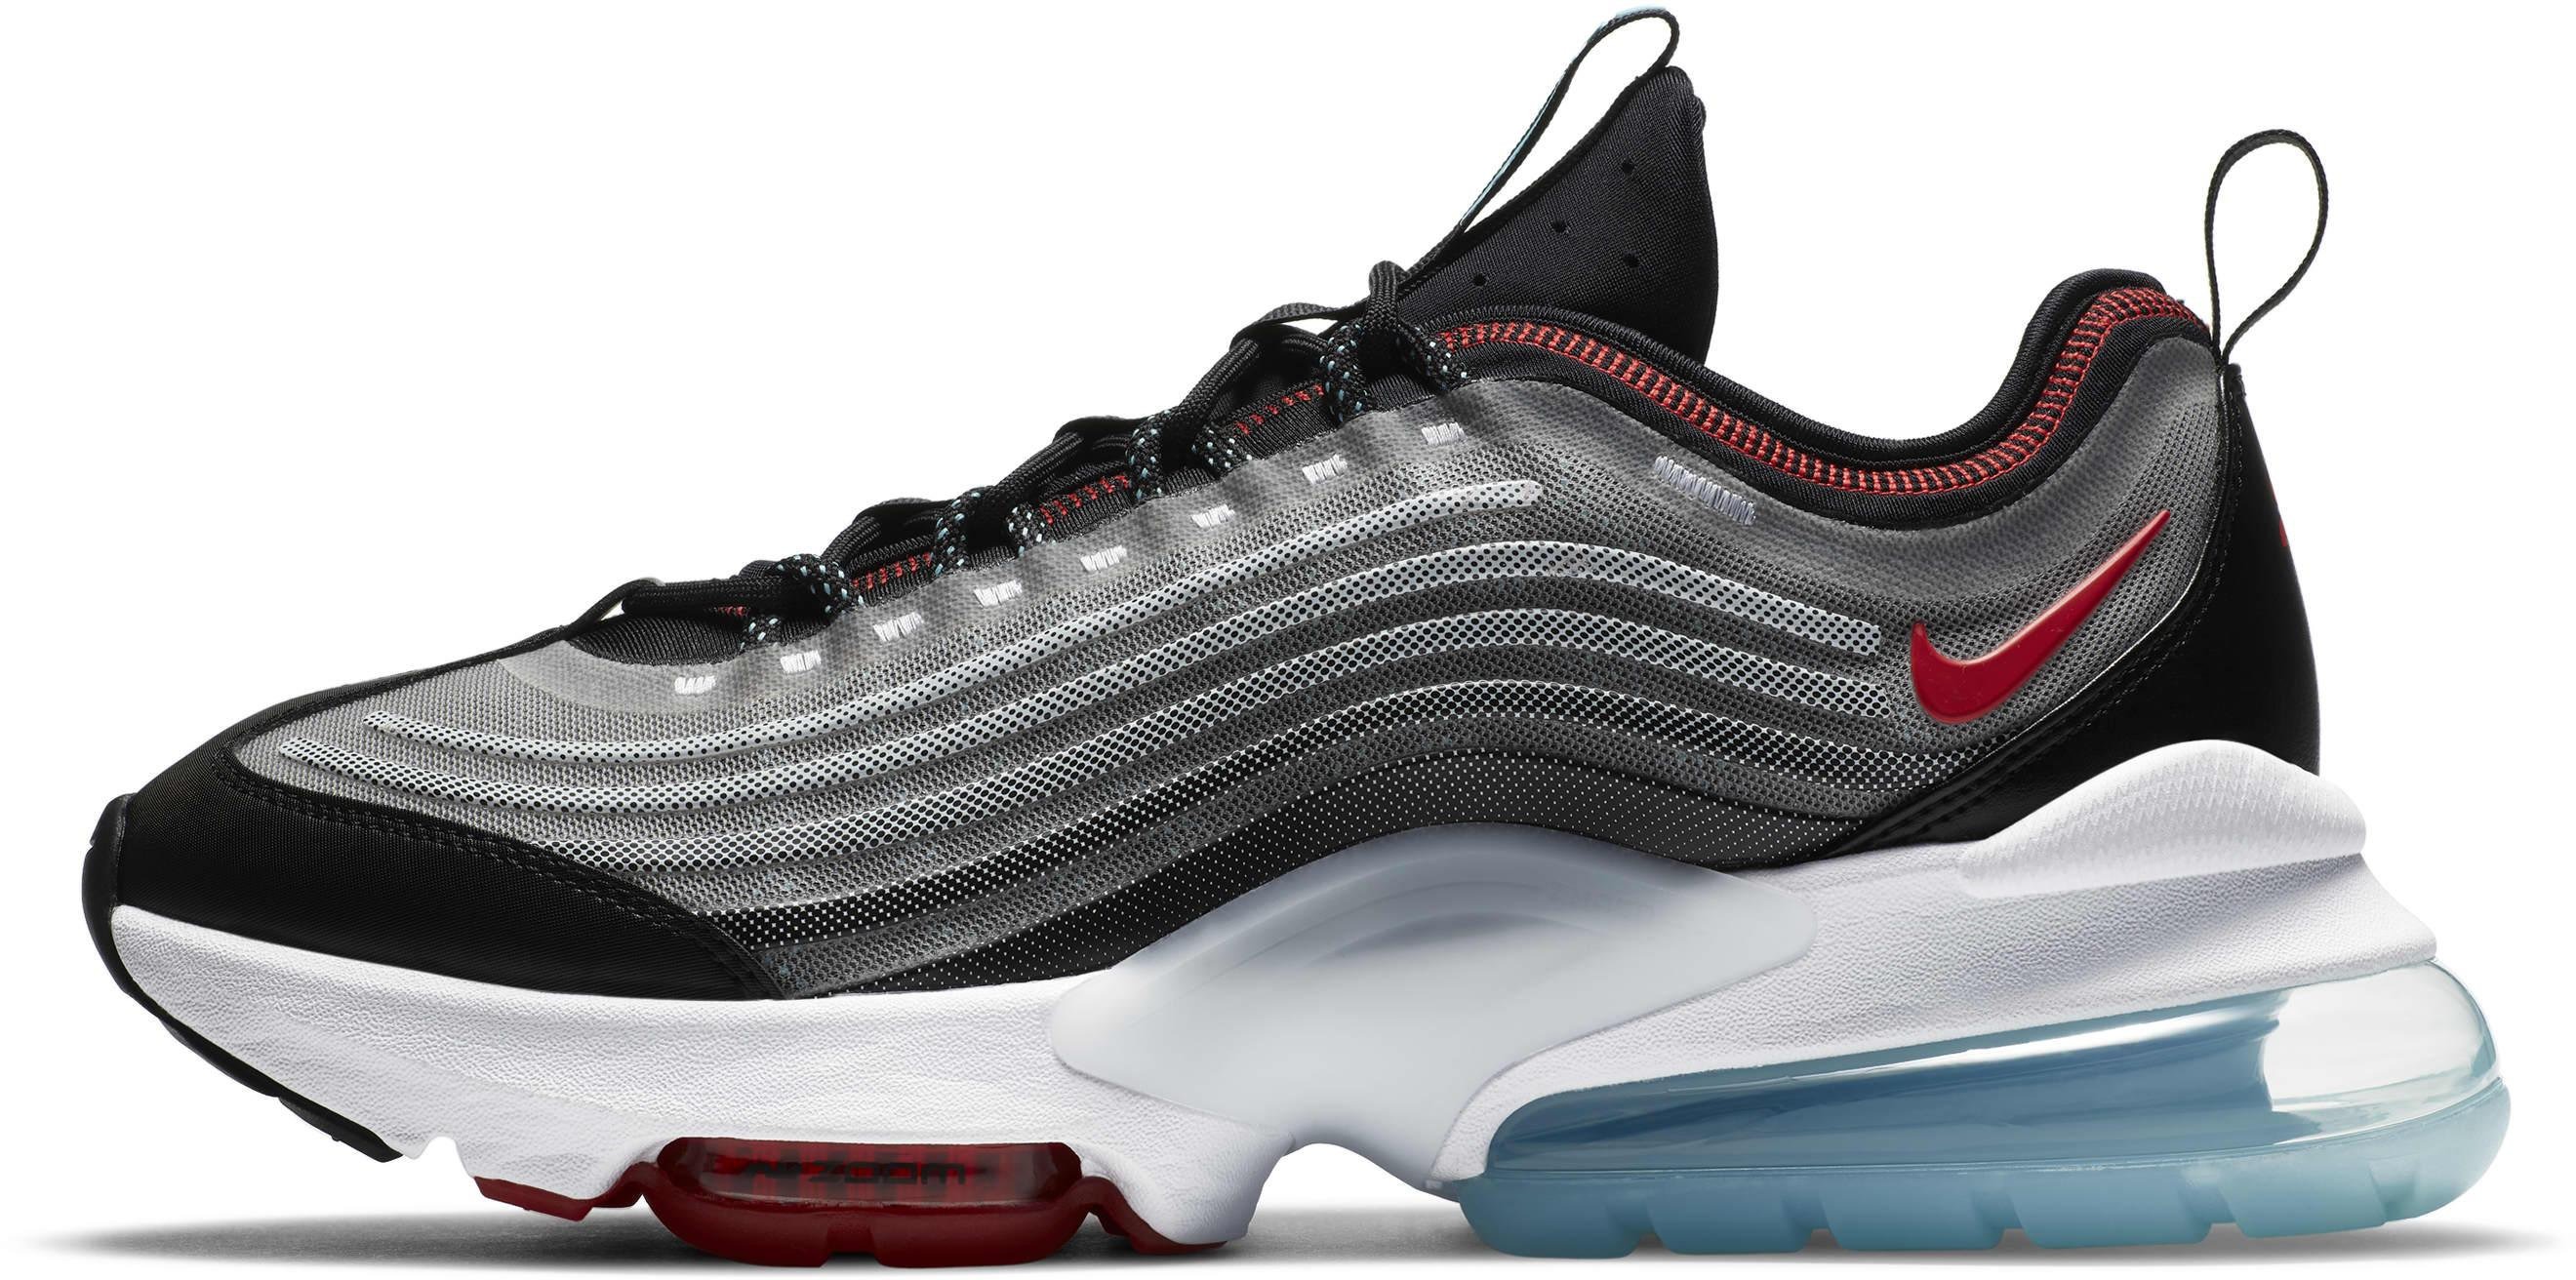 Nike Air Max ZM950 White/Black/White/Chile Red